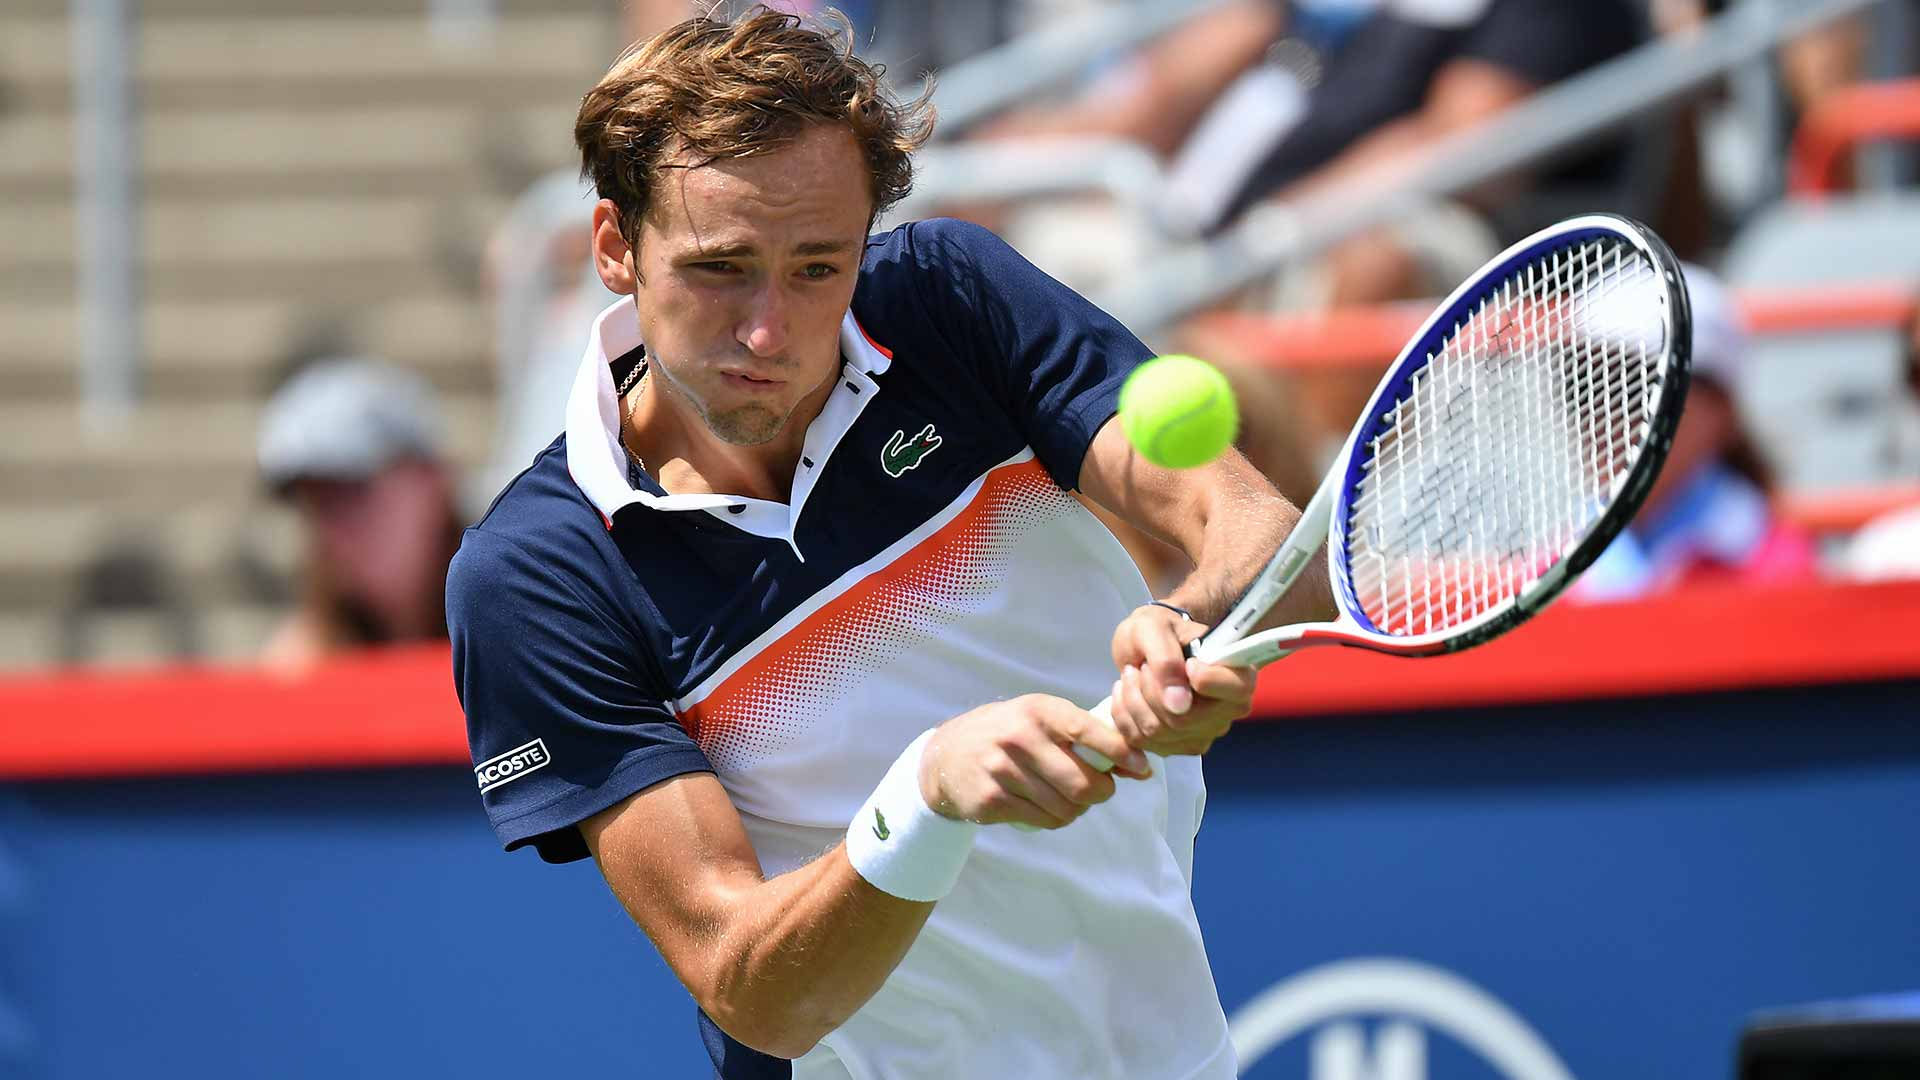 Daniil Medvedev beat Dominic Thiem in straight sets on Friday at the Coupe Rogers in Montreal